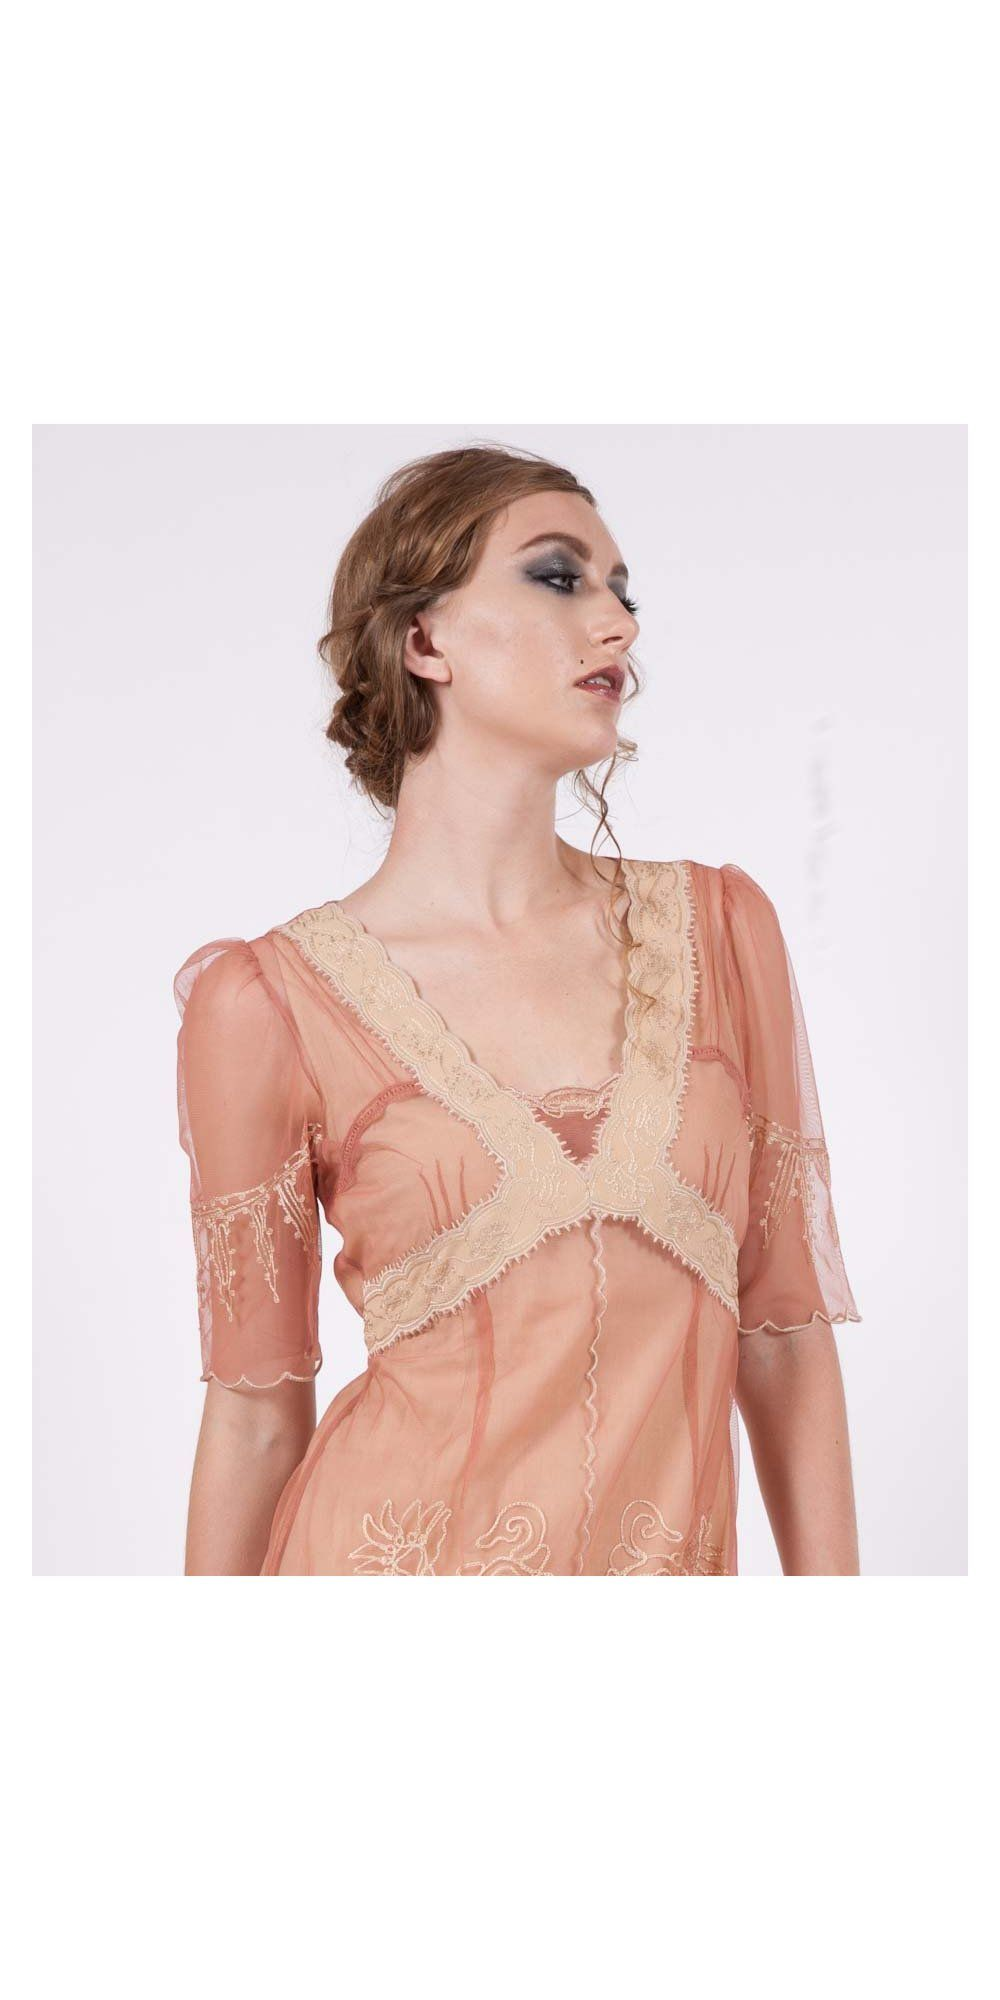 New Vintage Titanic Tea Party Dress in Rose/Gold by Nataya - SOLD OUT